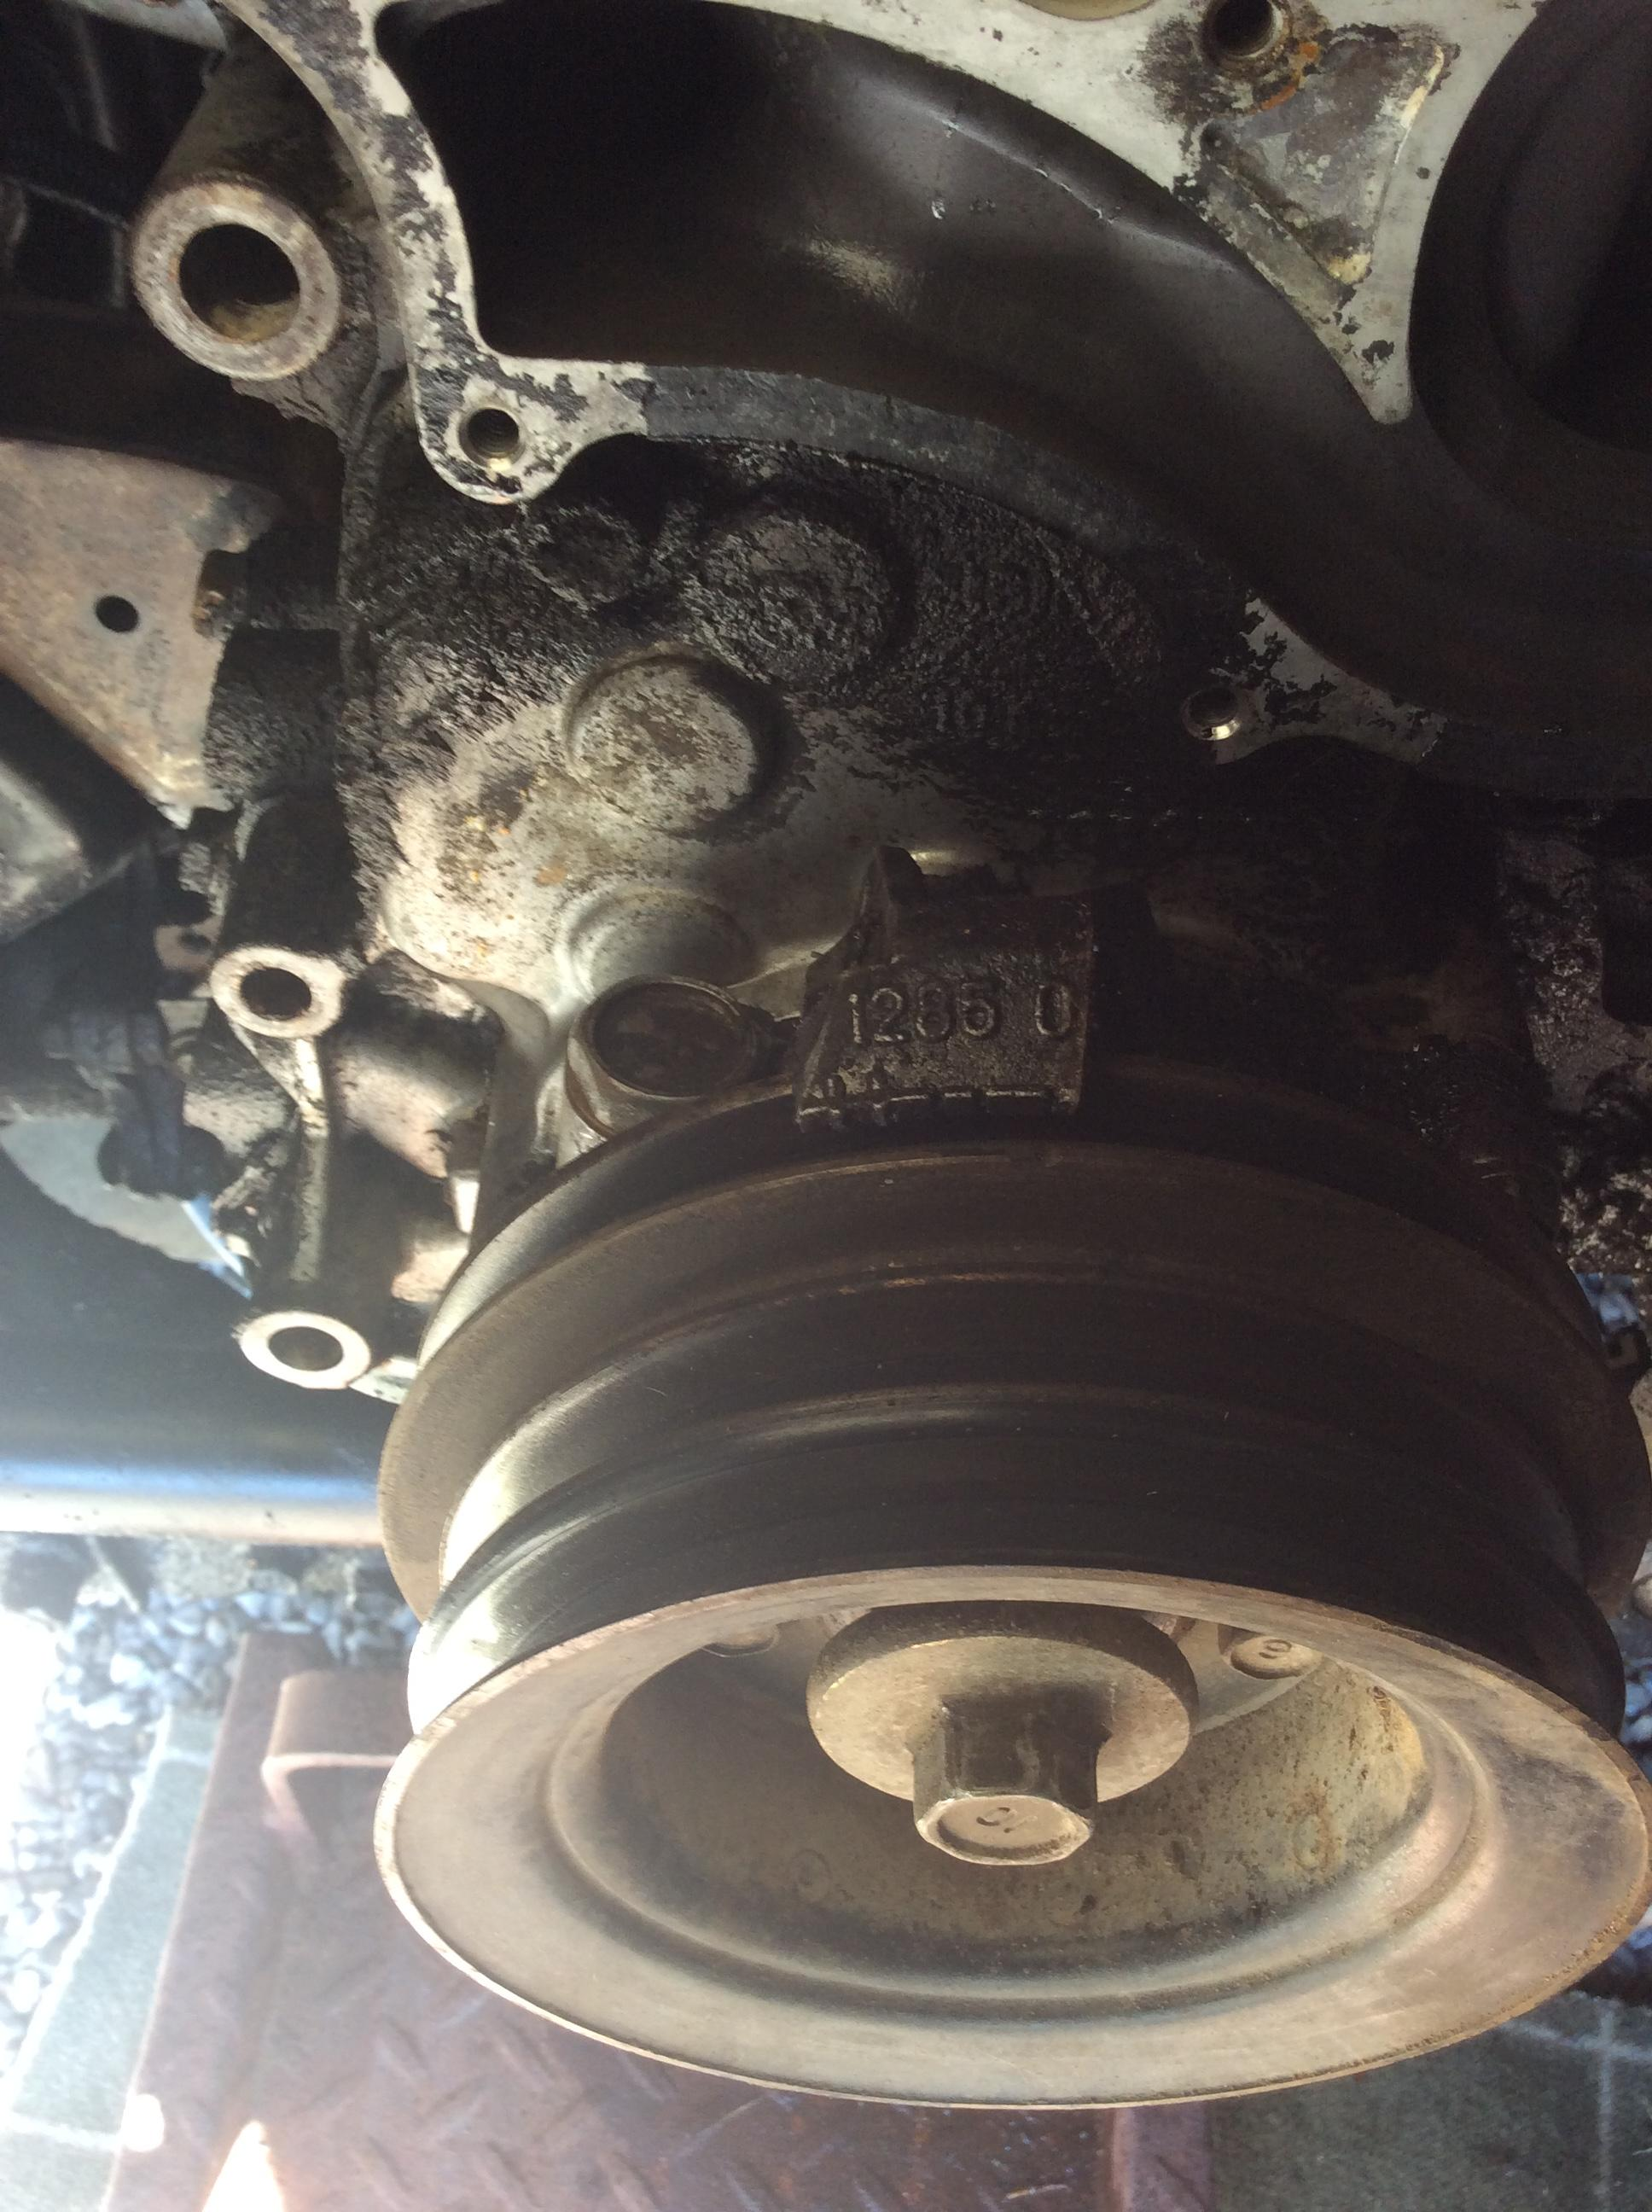 Timing Chain Rattle in 1993 Toyota 22R-E Engine - Toyota 4WD Pickup